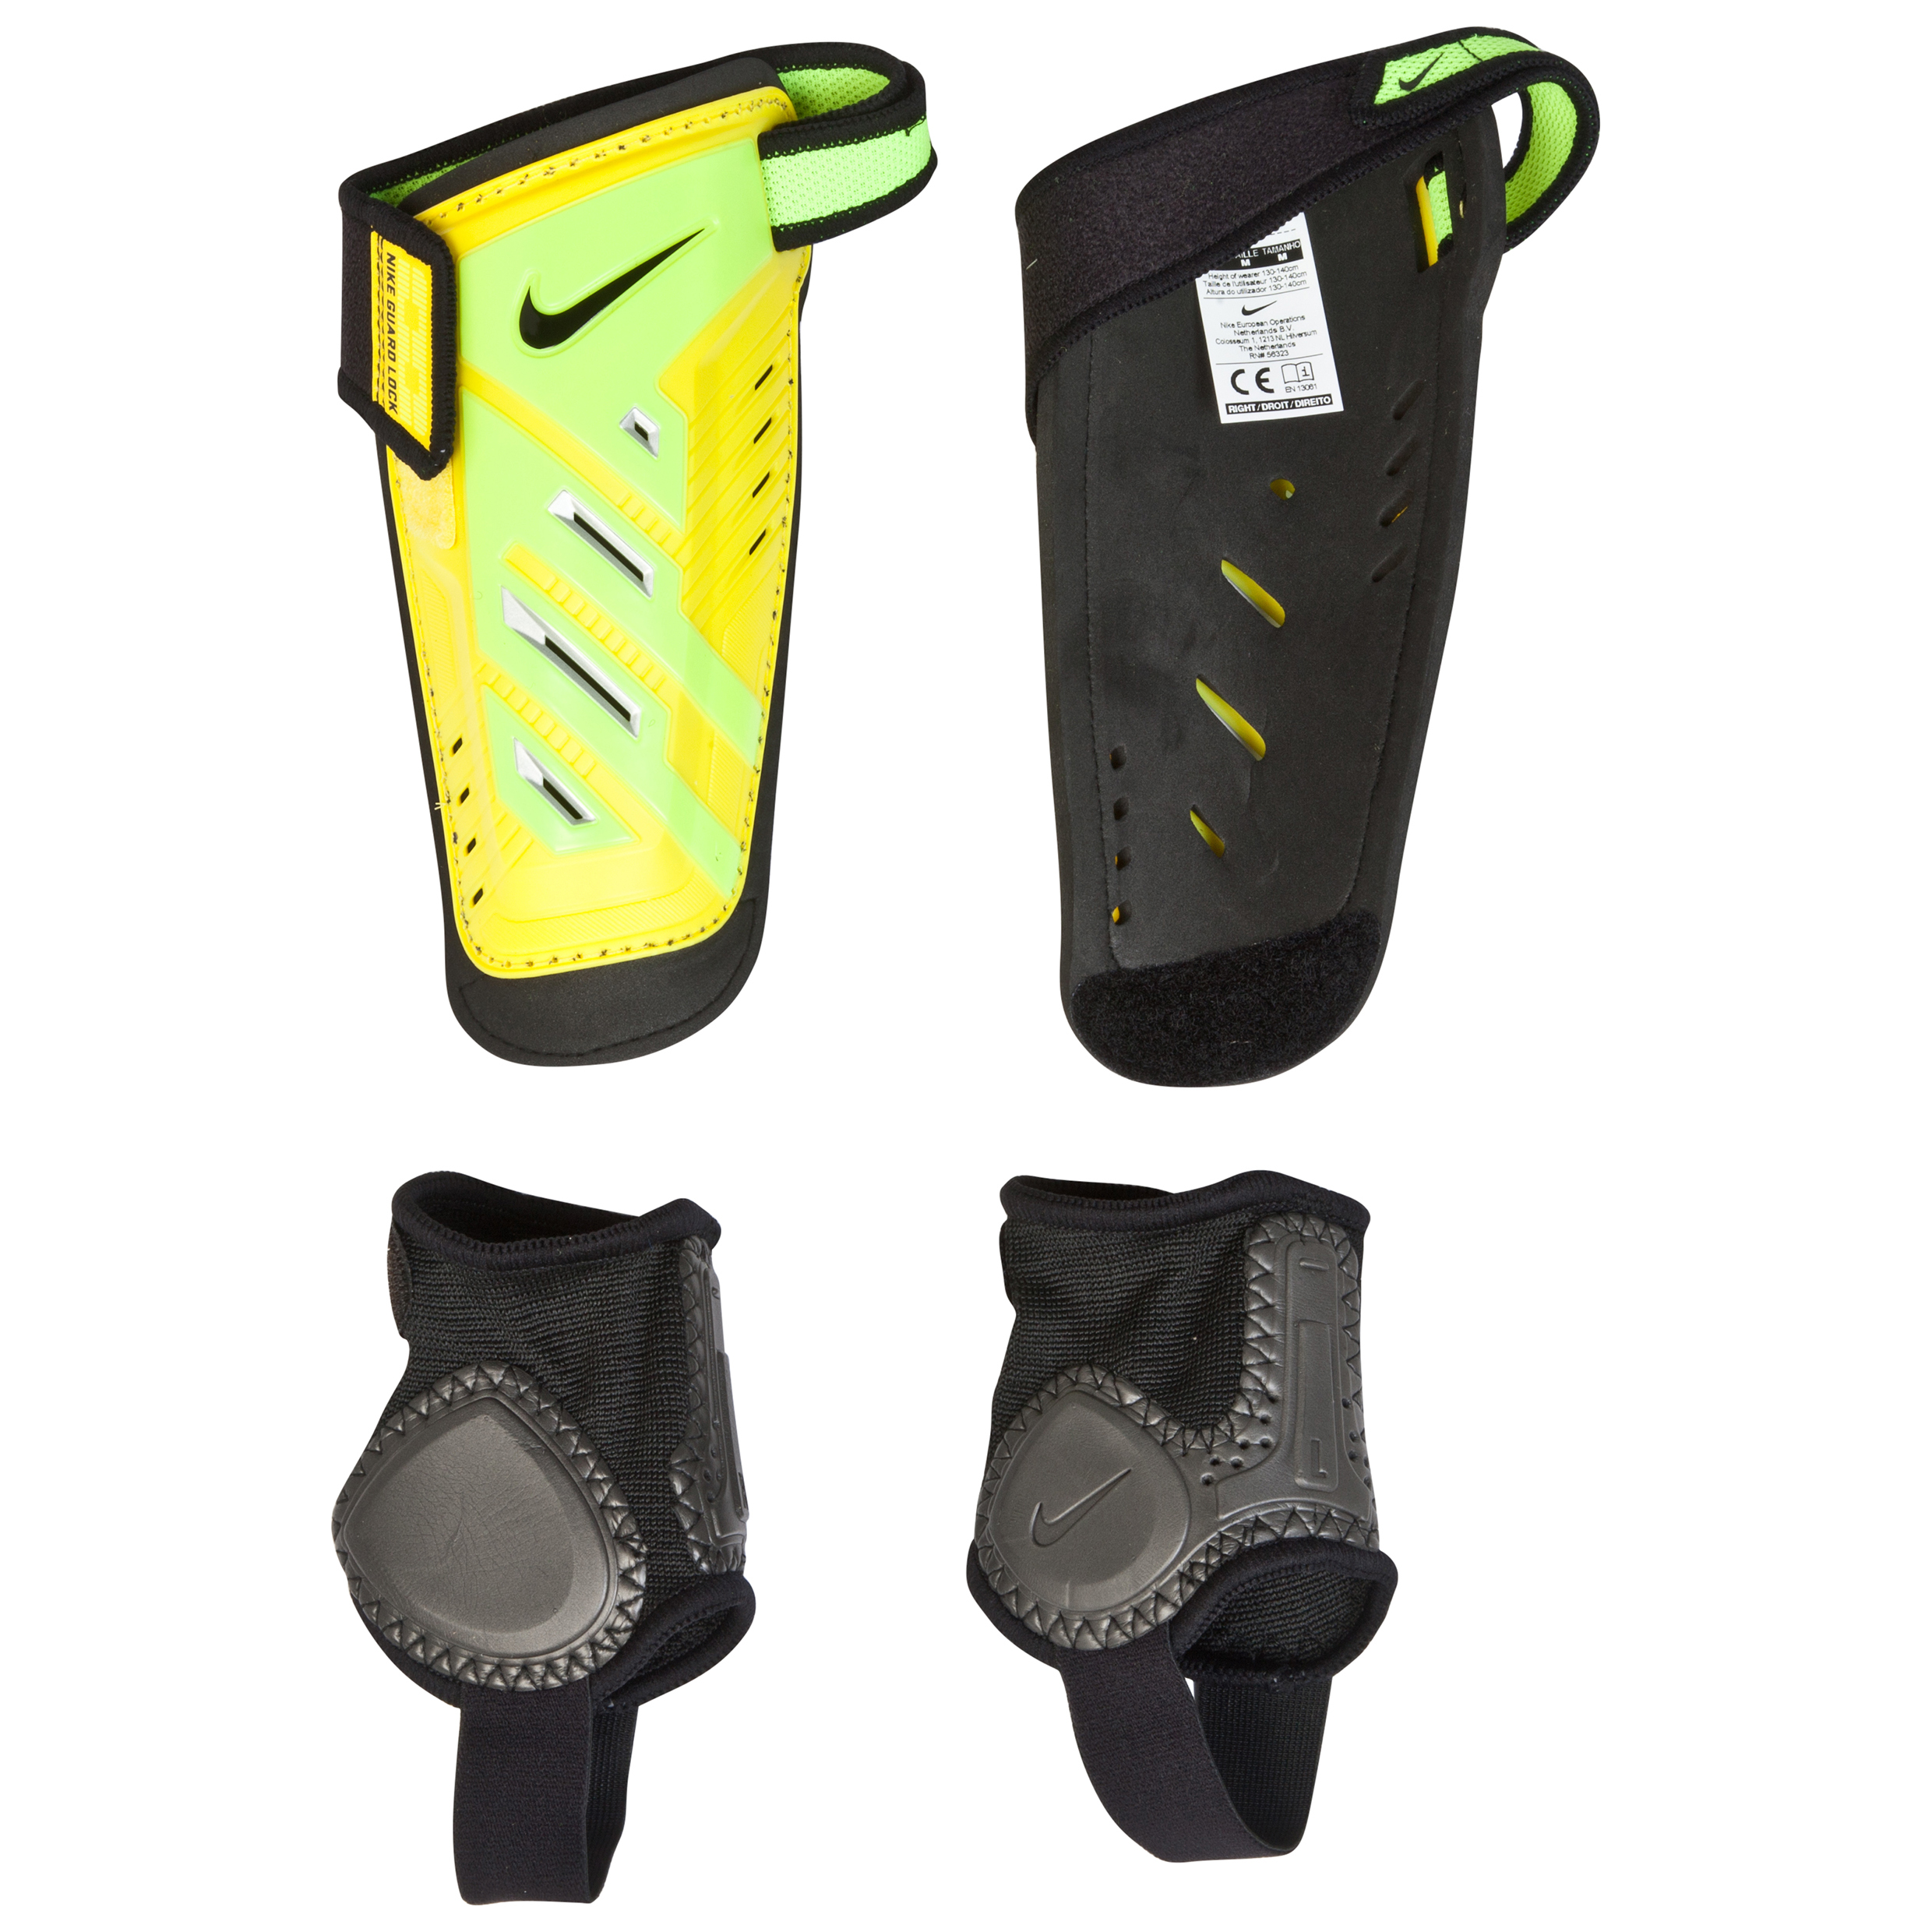 Nike Protegga Shield Shin Pad Yth Yellow